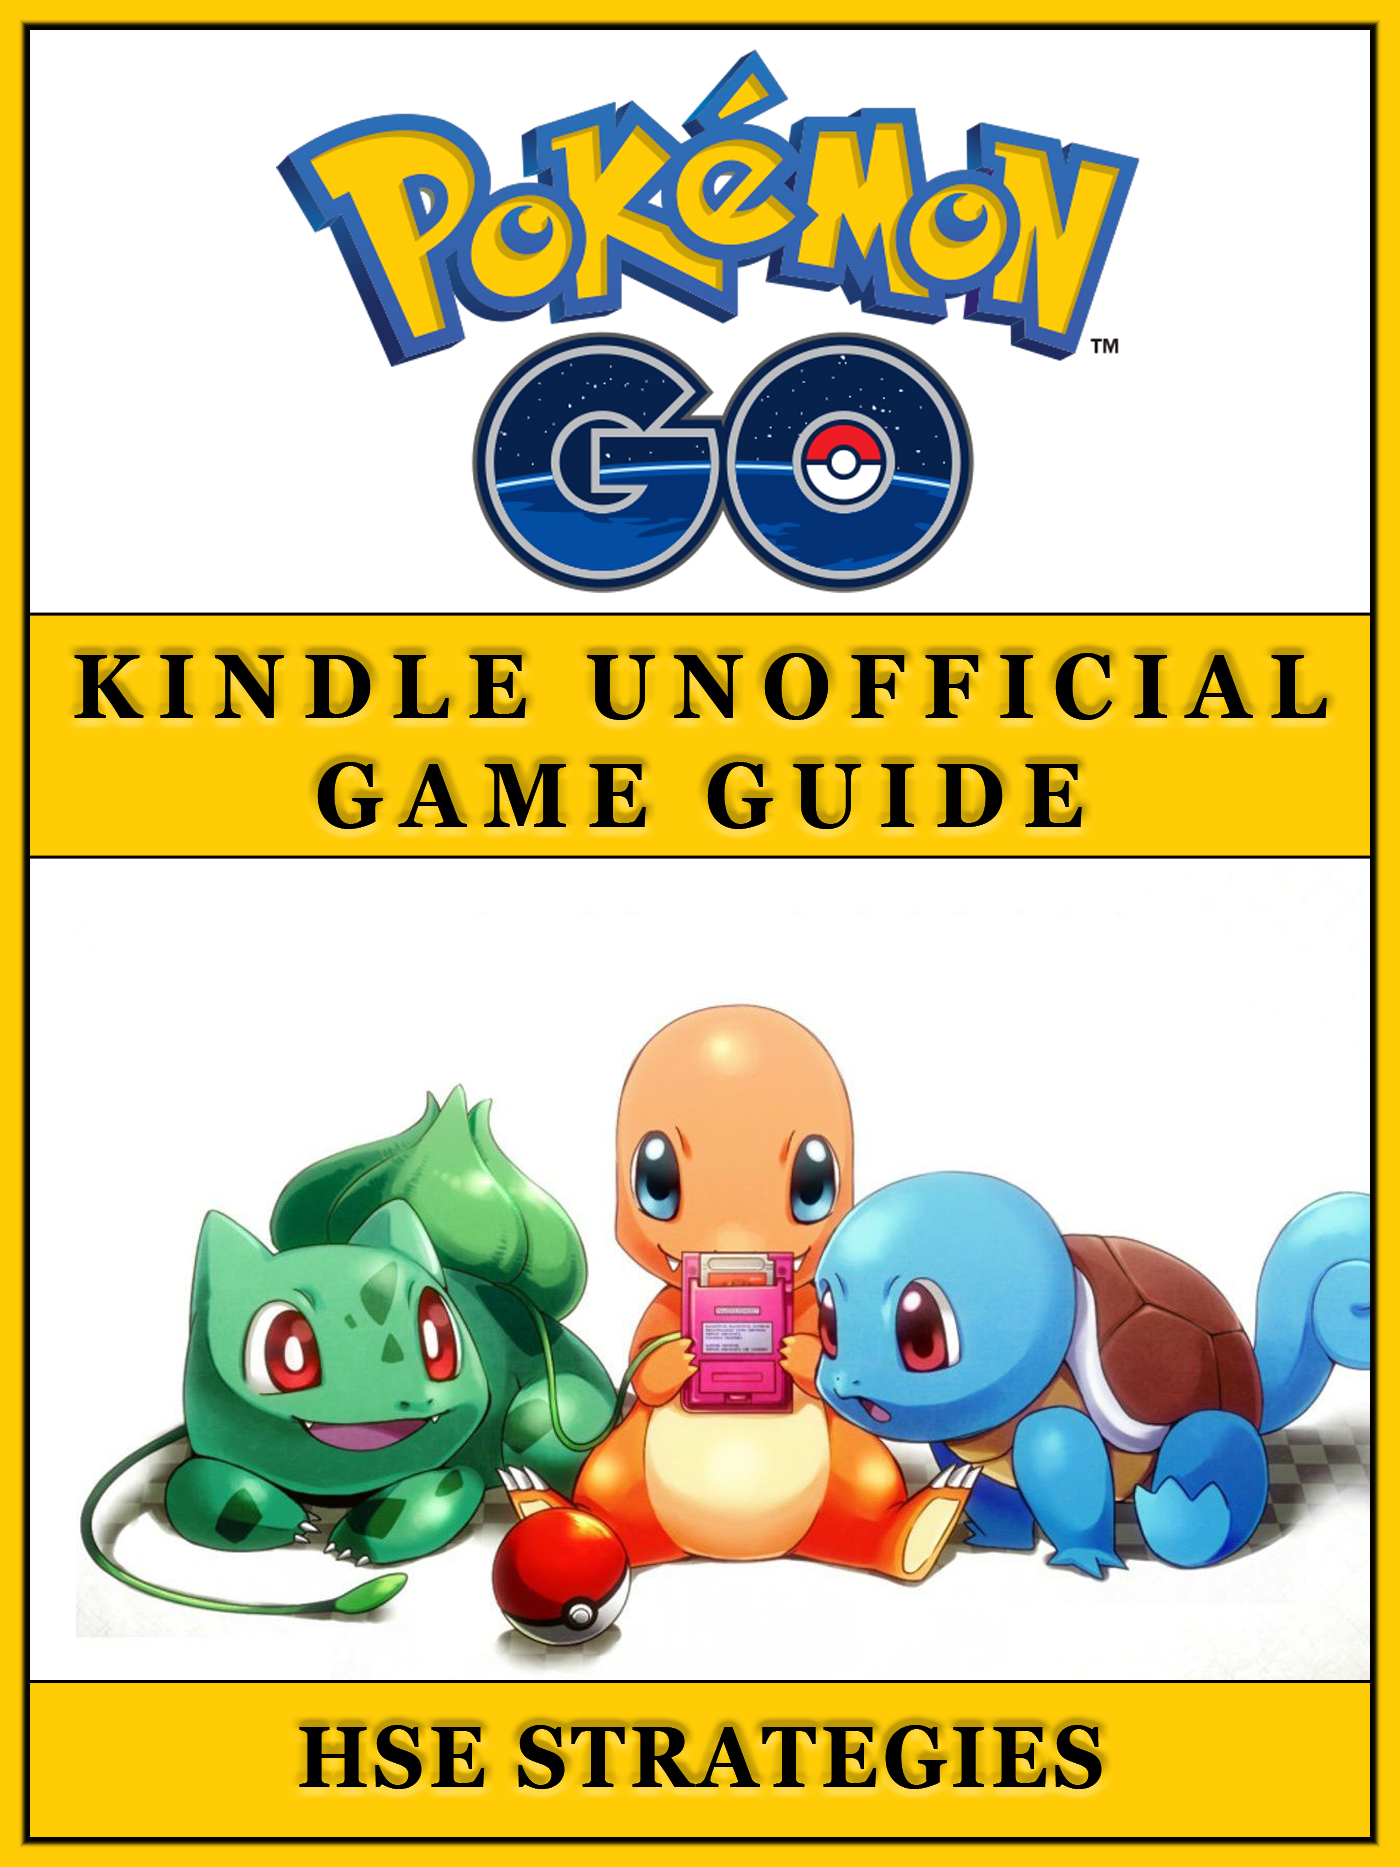 Pokemon Go Kindle Unofficial Game Guide